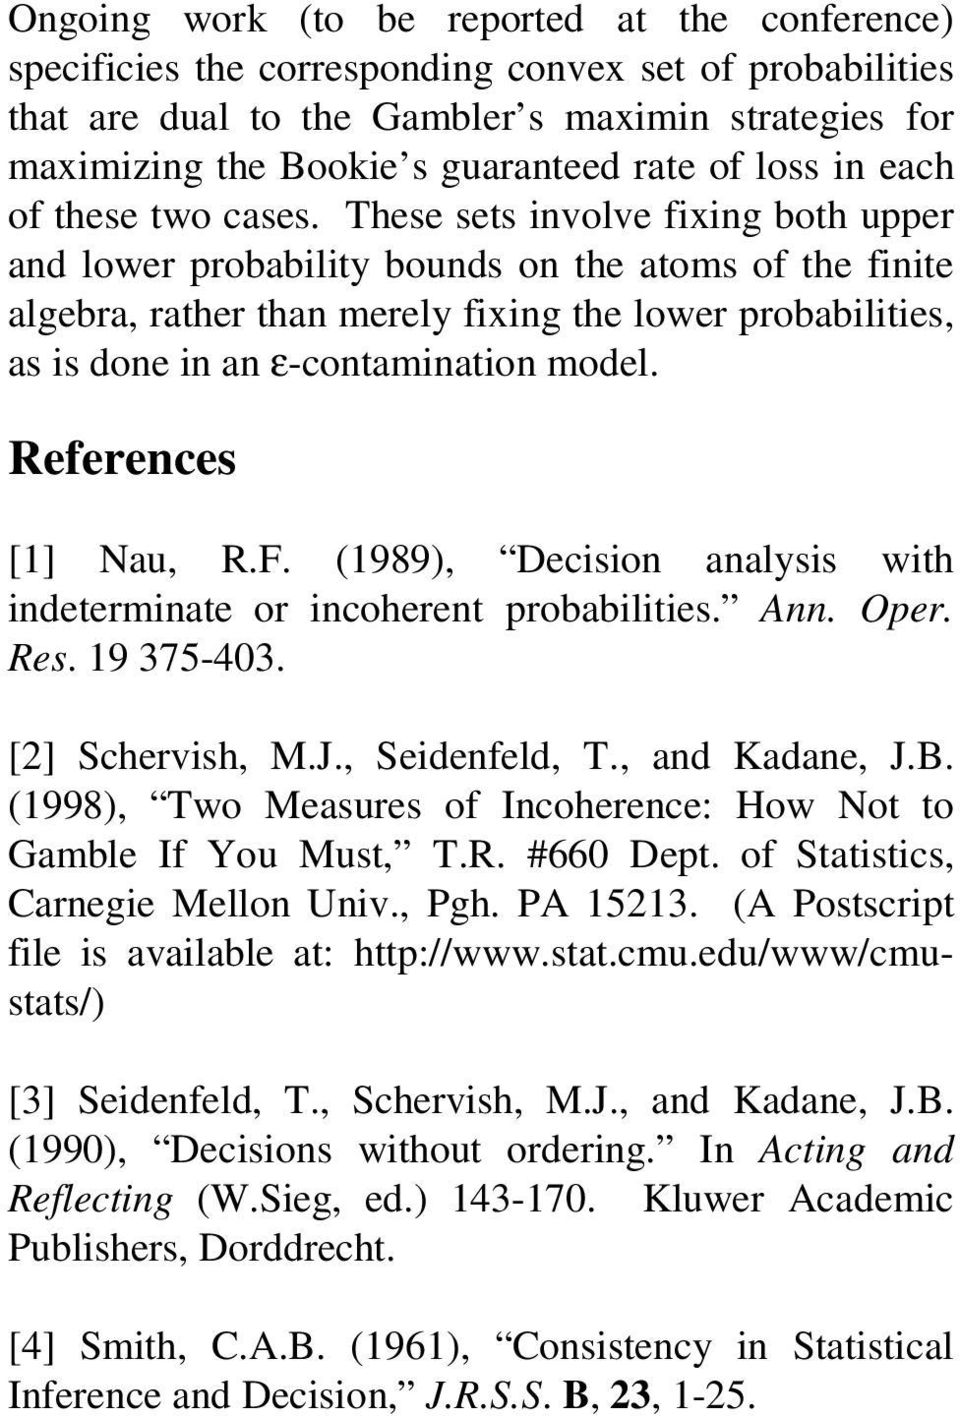 References [1] Nau, R.F. (1989), Decson analyss wth ndetermnate or ncoherent probabltes. Ann. Oper. Res. 19 375-403. [2] Schervsh, M.J., Sedenfeld, T., and Kadane, J.B.